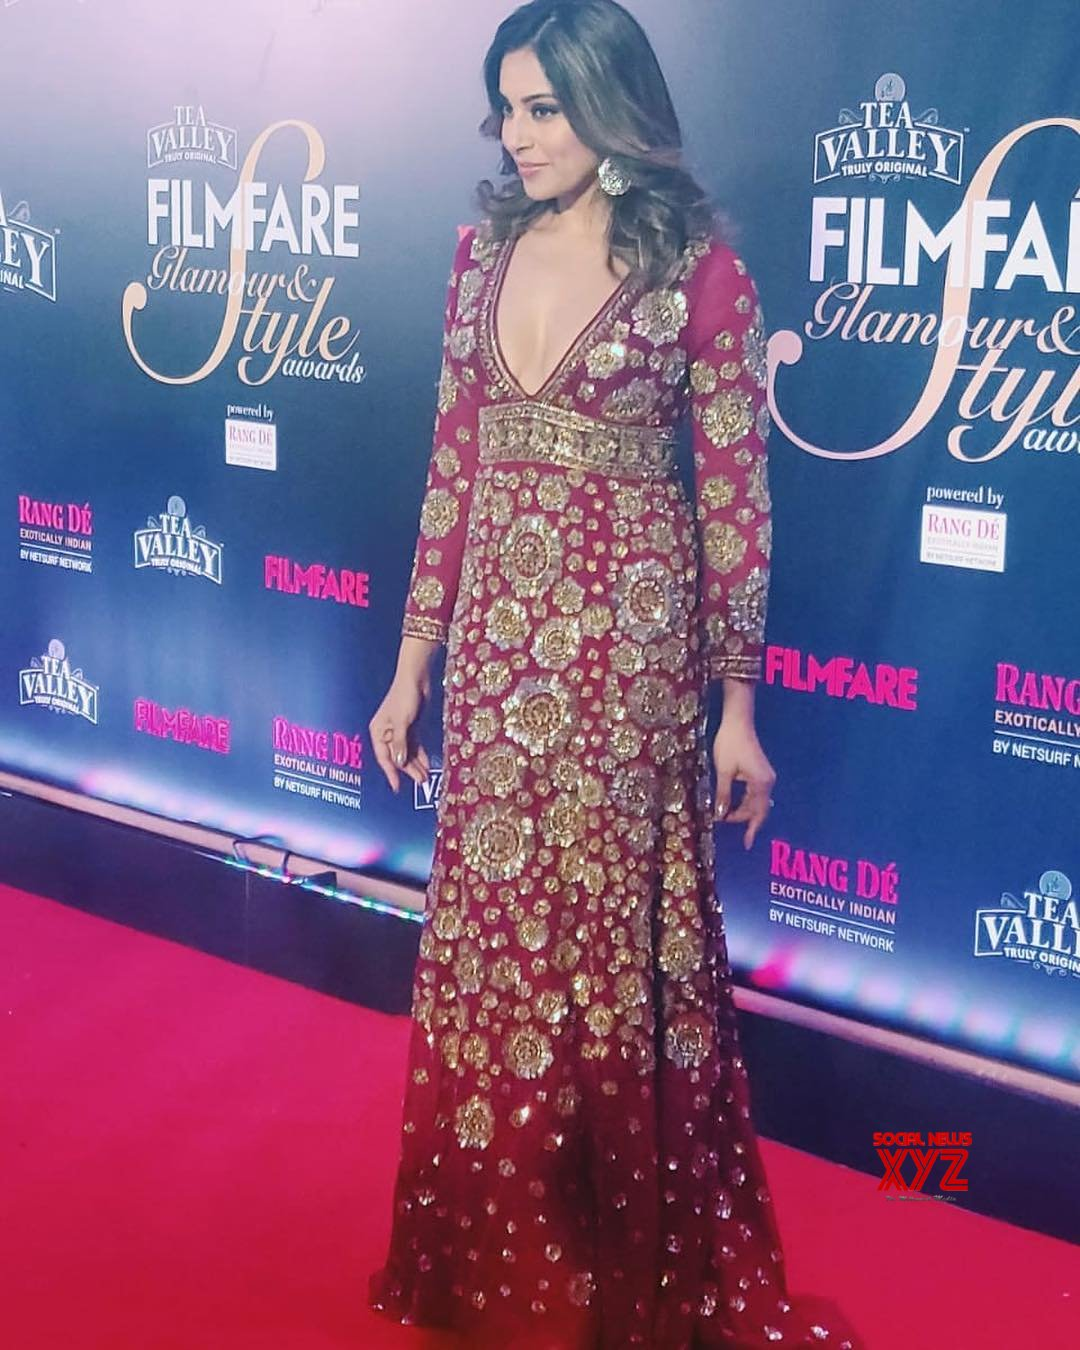 Actress Bipasha Basu Stills From Filmfare Glamour And Style Awards